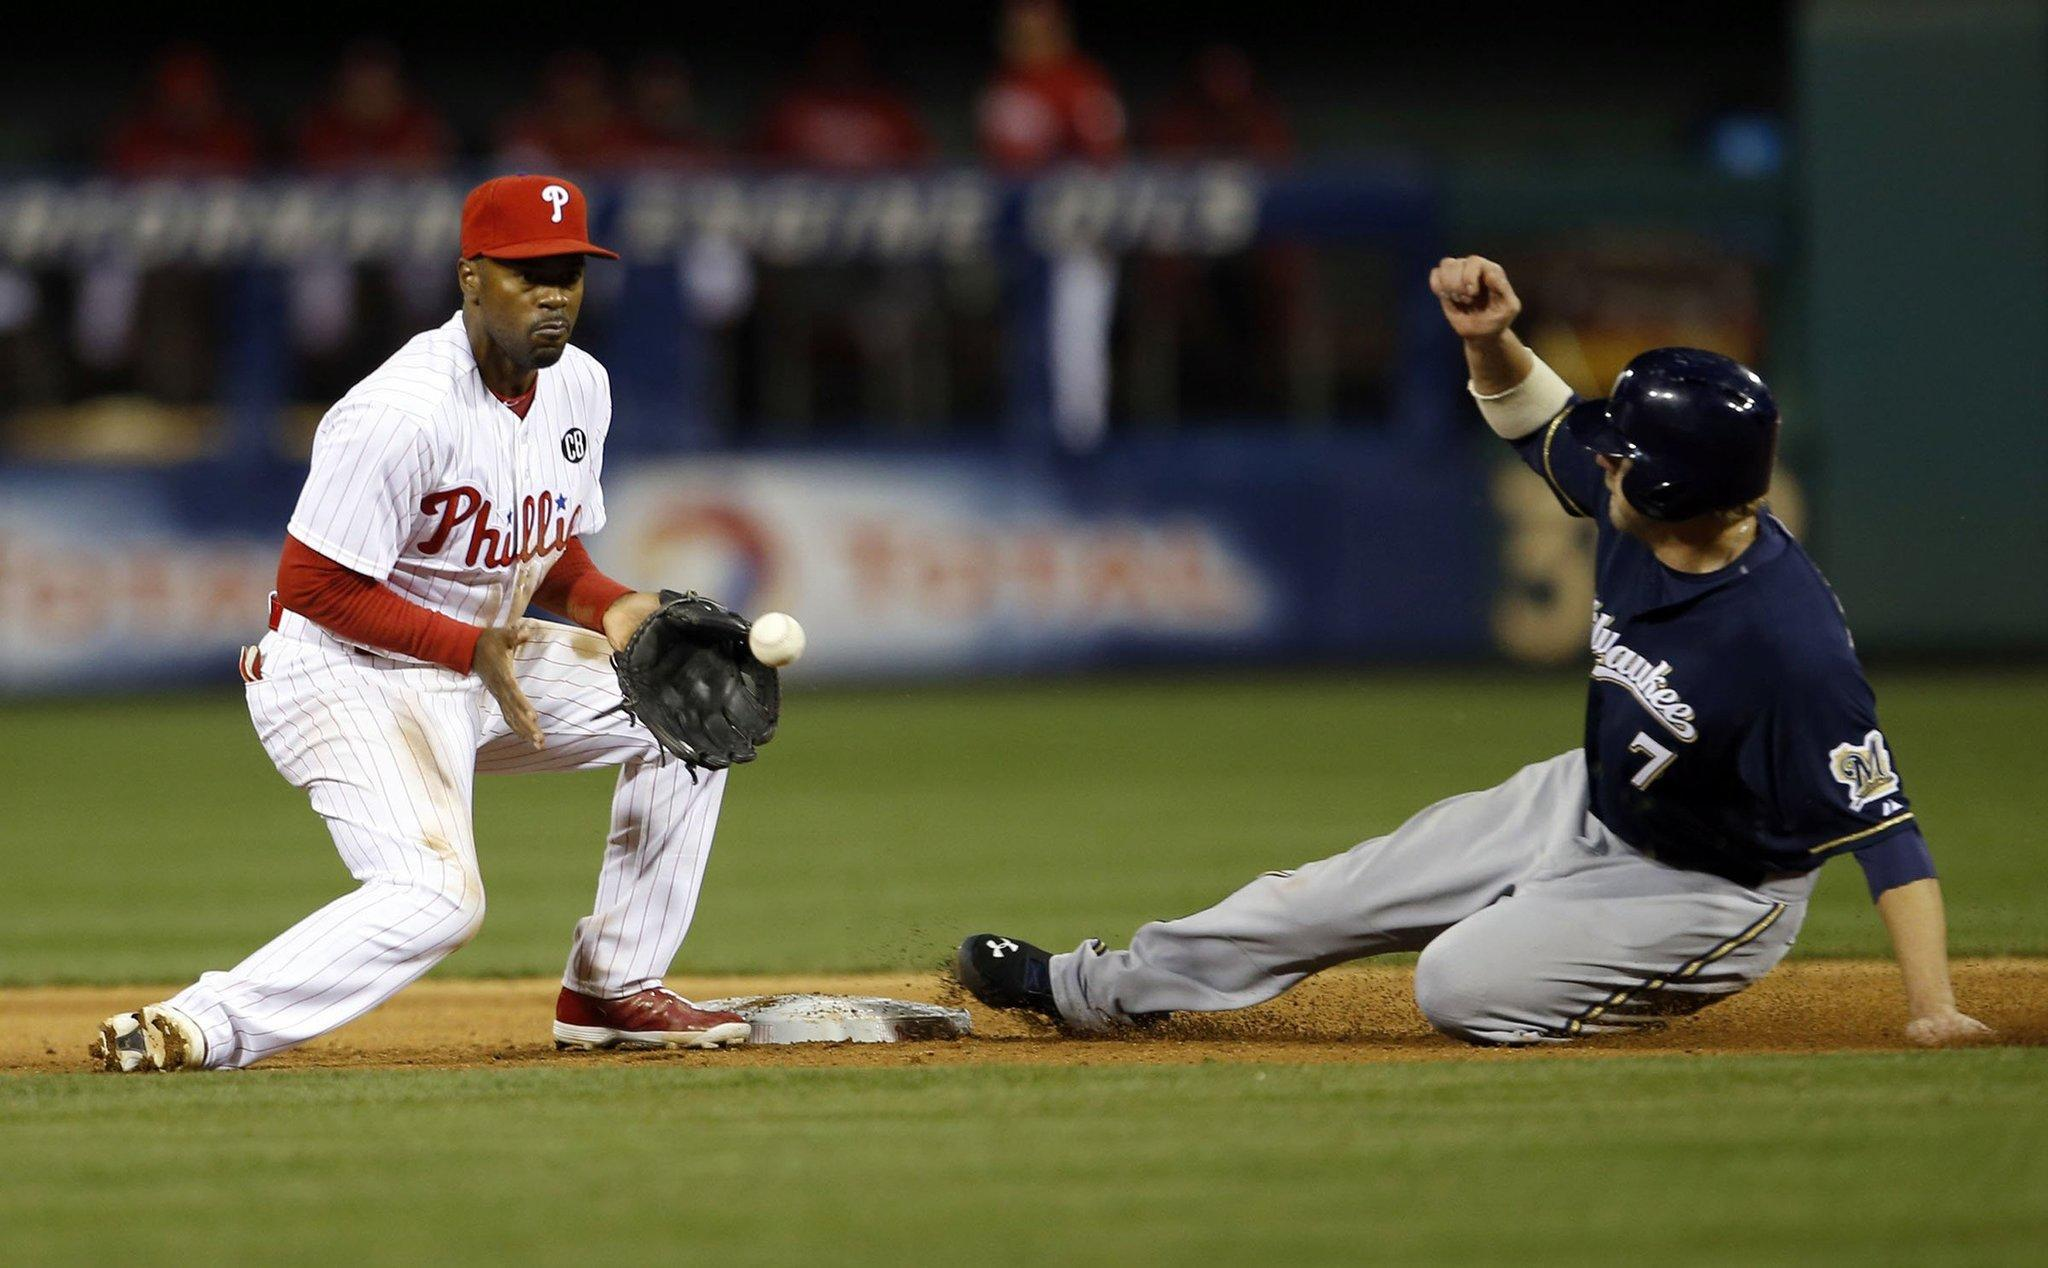 The Milwaukee Brewers' Mark Reynolds, right, steals second base against Philadelphia Phillies shortstop Jimmy Rollins in the eighth inning at Citizens Bank Park in Philadelphia on Wednesday, April 9, 2014. The Brewers won, 9-4.